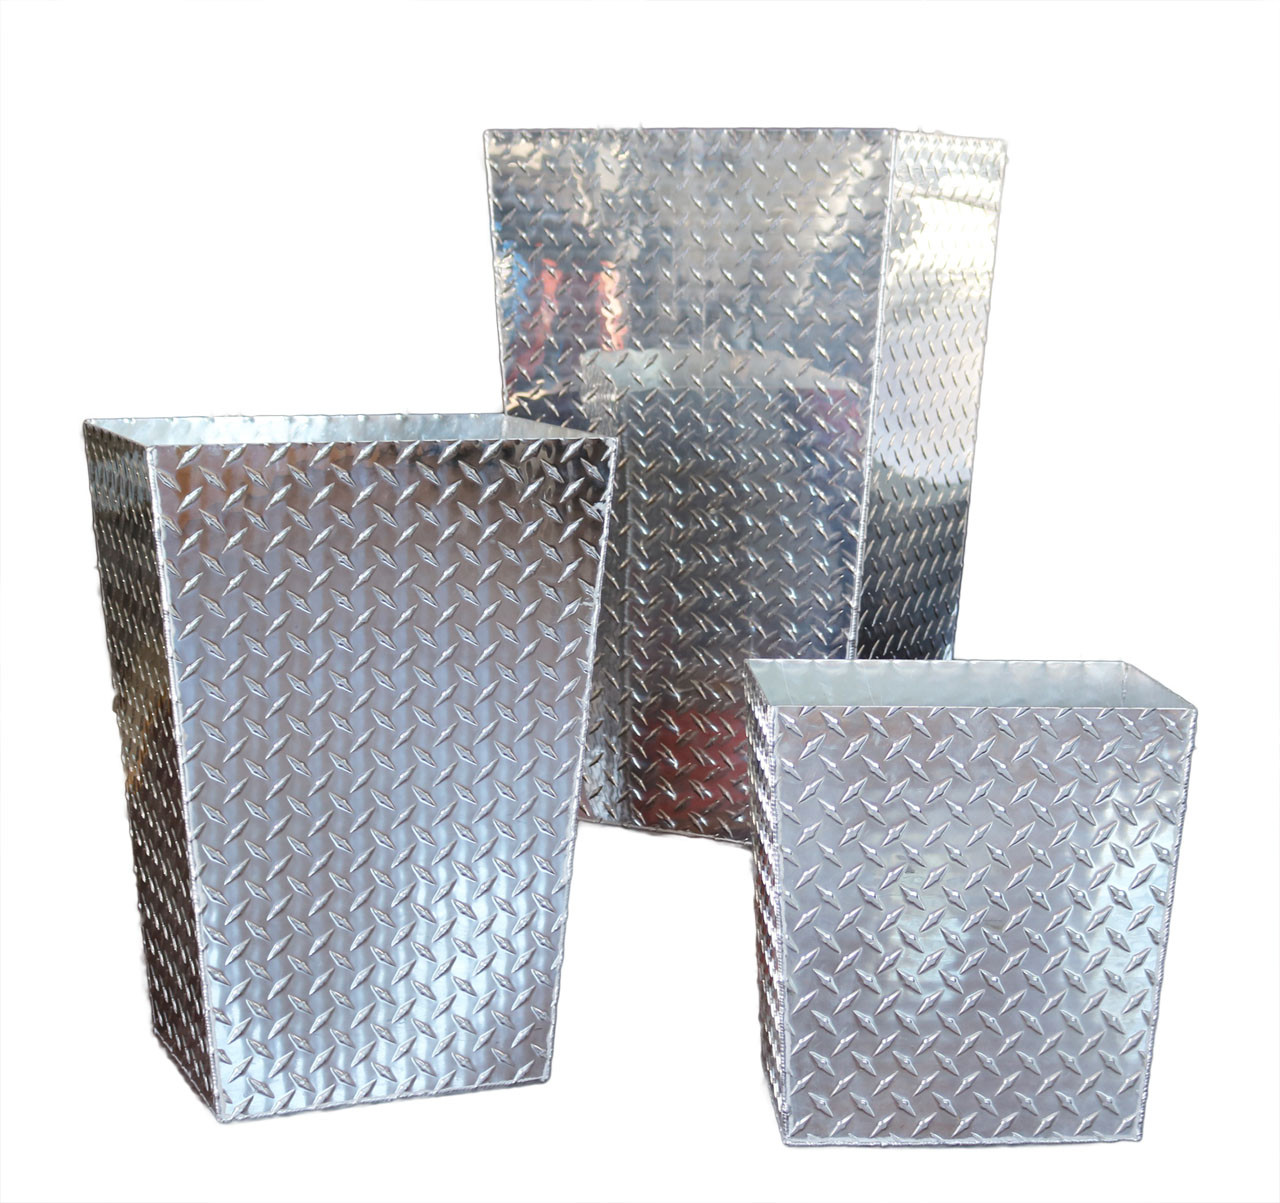 Diamond Plate Trash Cans, Three Sizes Shown